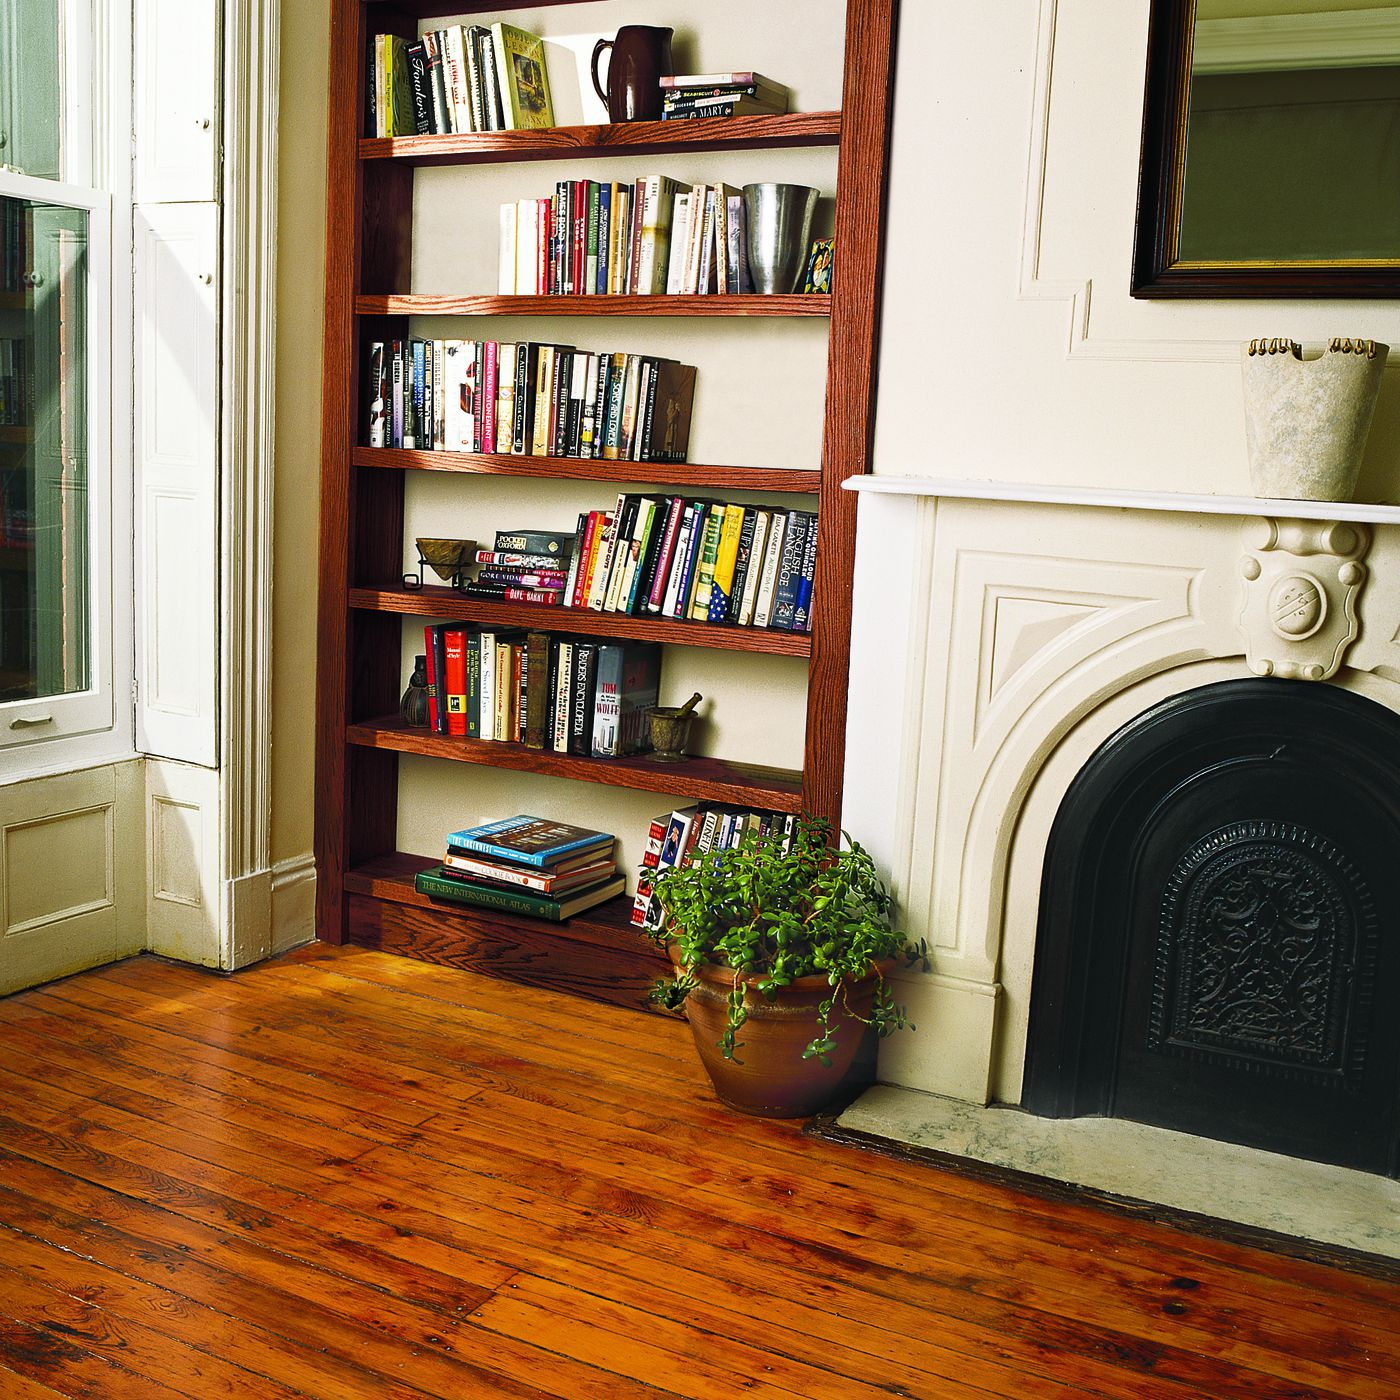 How To Build A Bookshelf In 8 Simple Steps This Old House